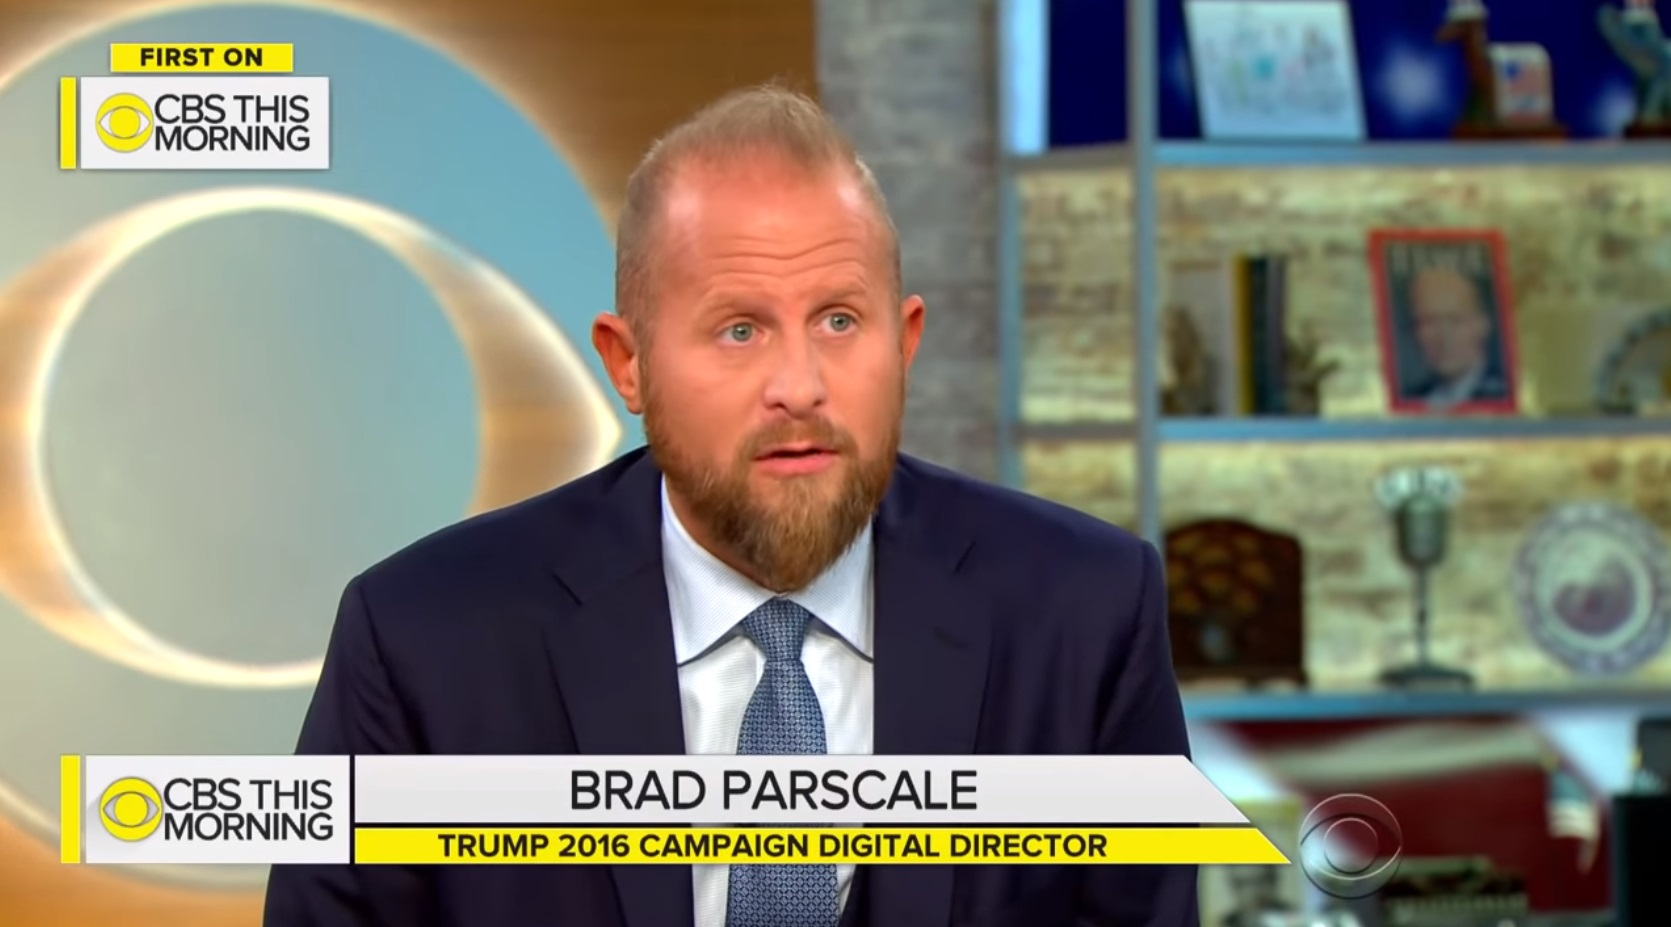 brad parscale i feel good about 2018 and i feel good about 2020